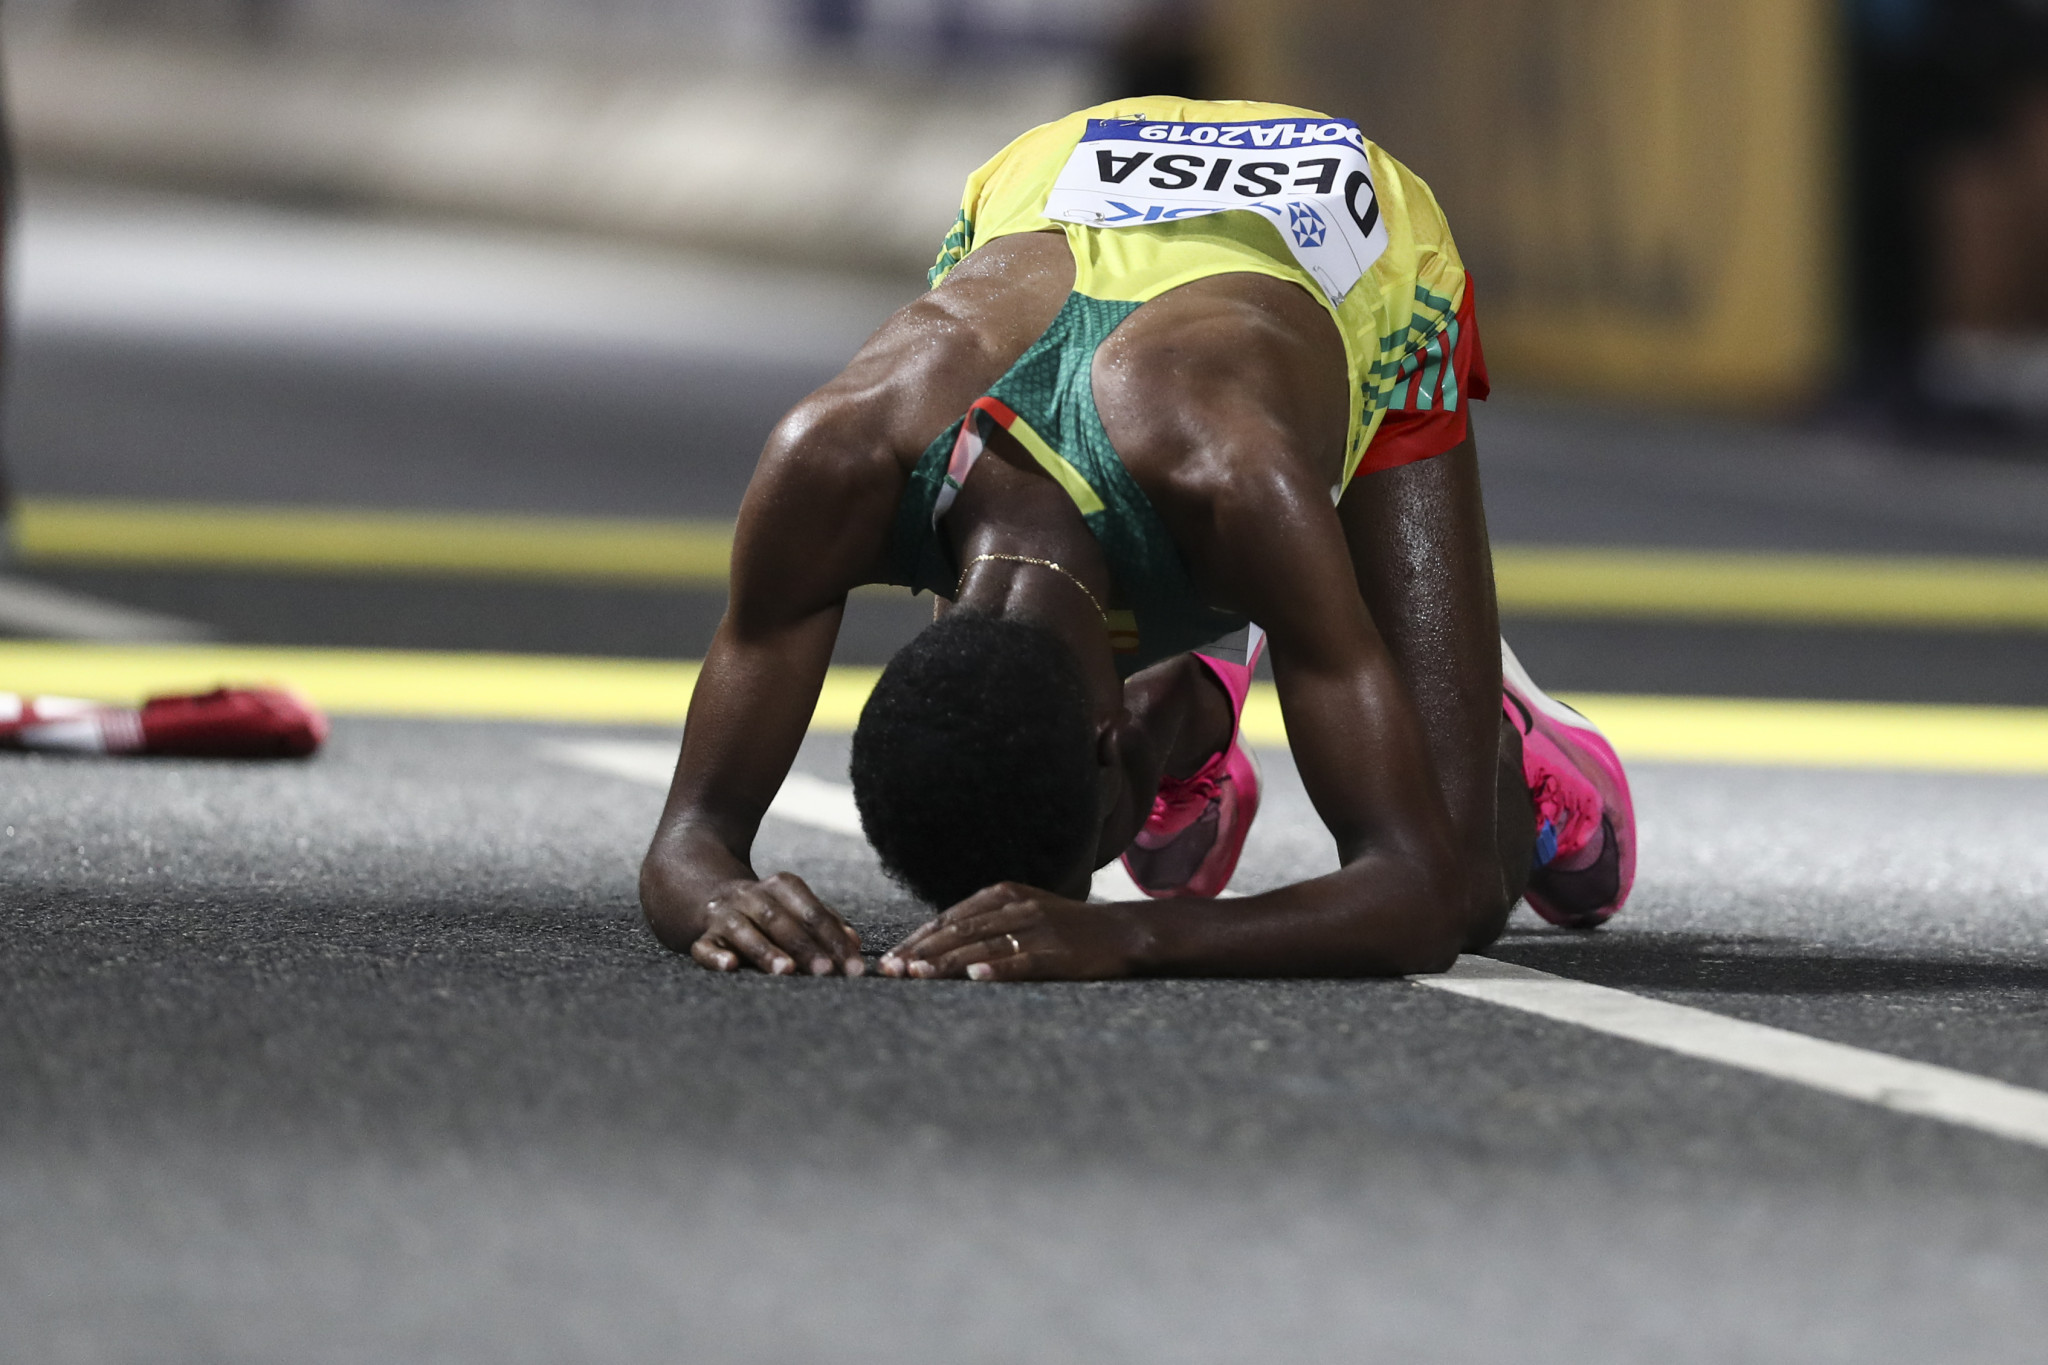 The IOC revealed the decision to move the marathon and race walk events to Sapporo was taken following the distressing scenes at the IAAF World Championships in Doha ©Getty Images